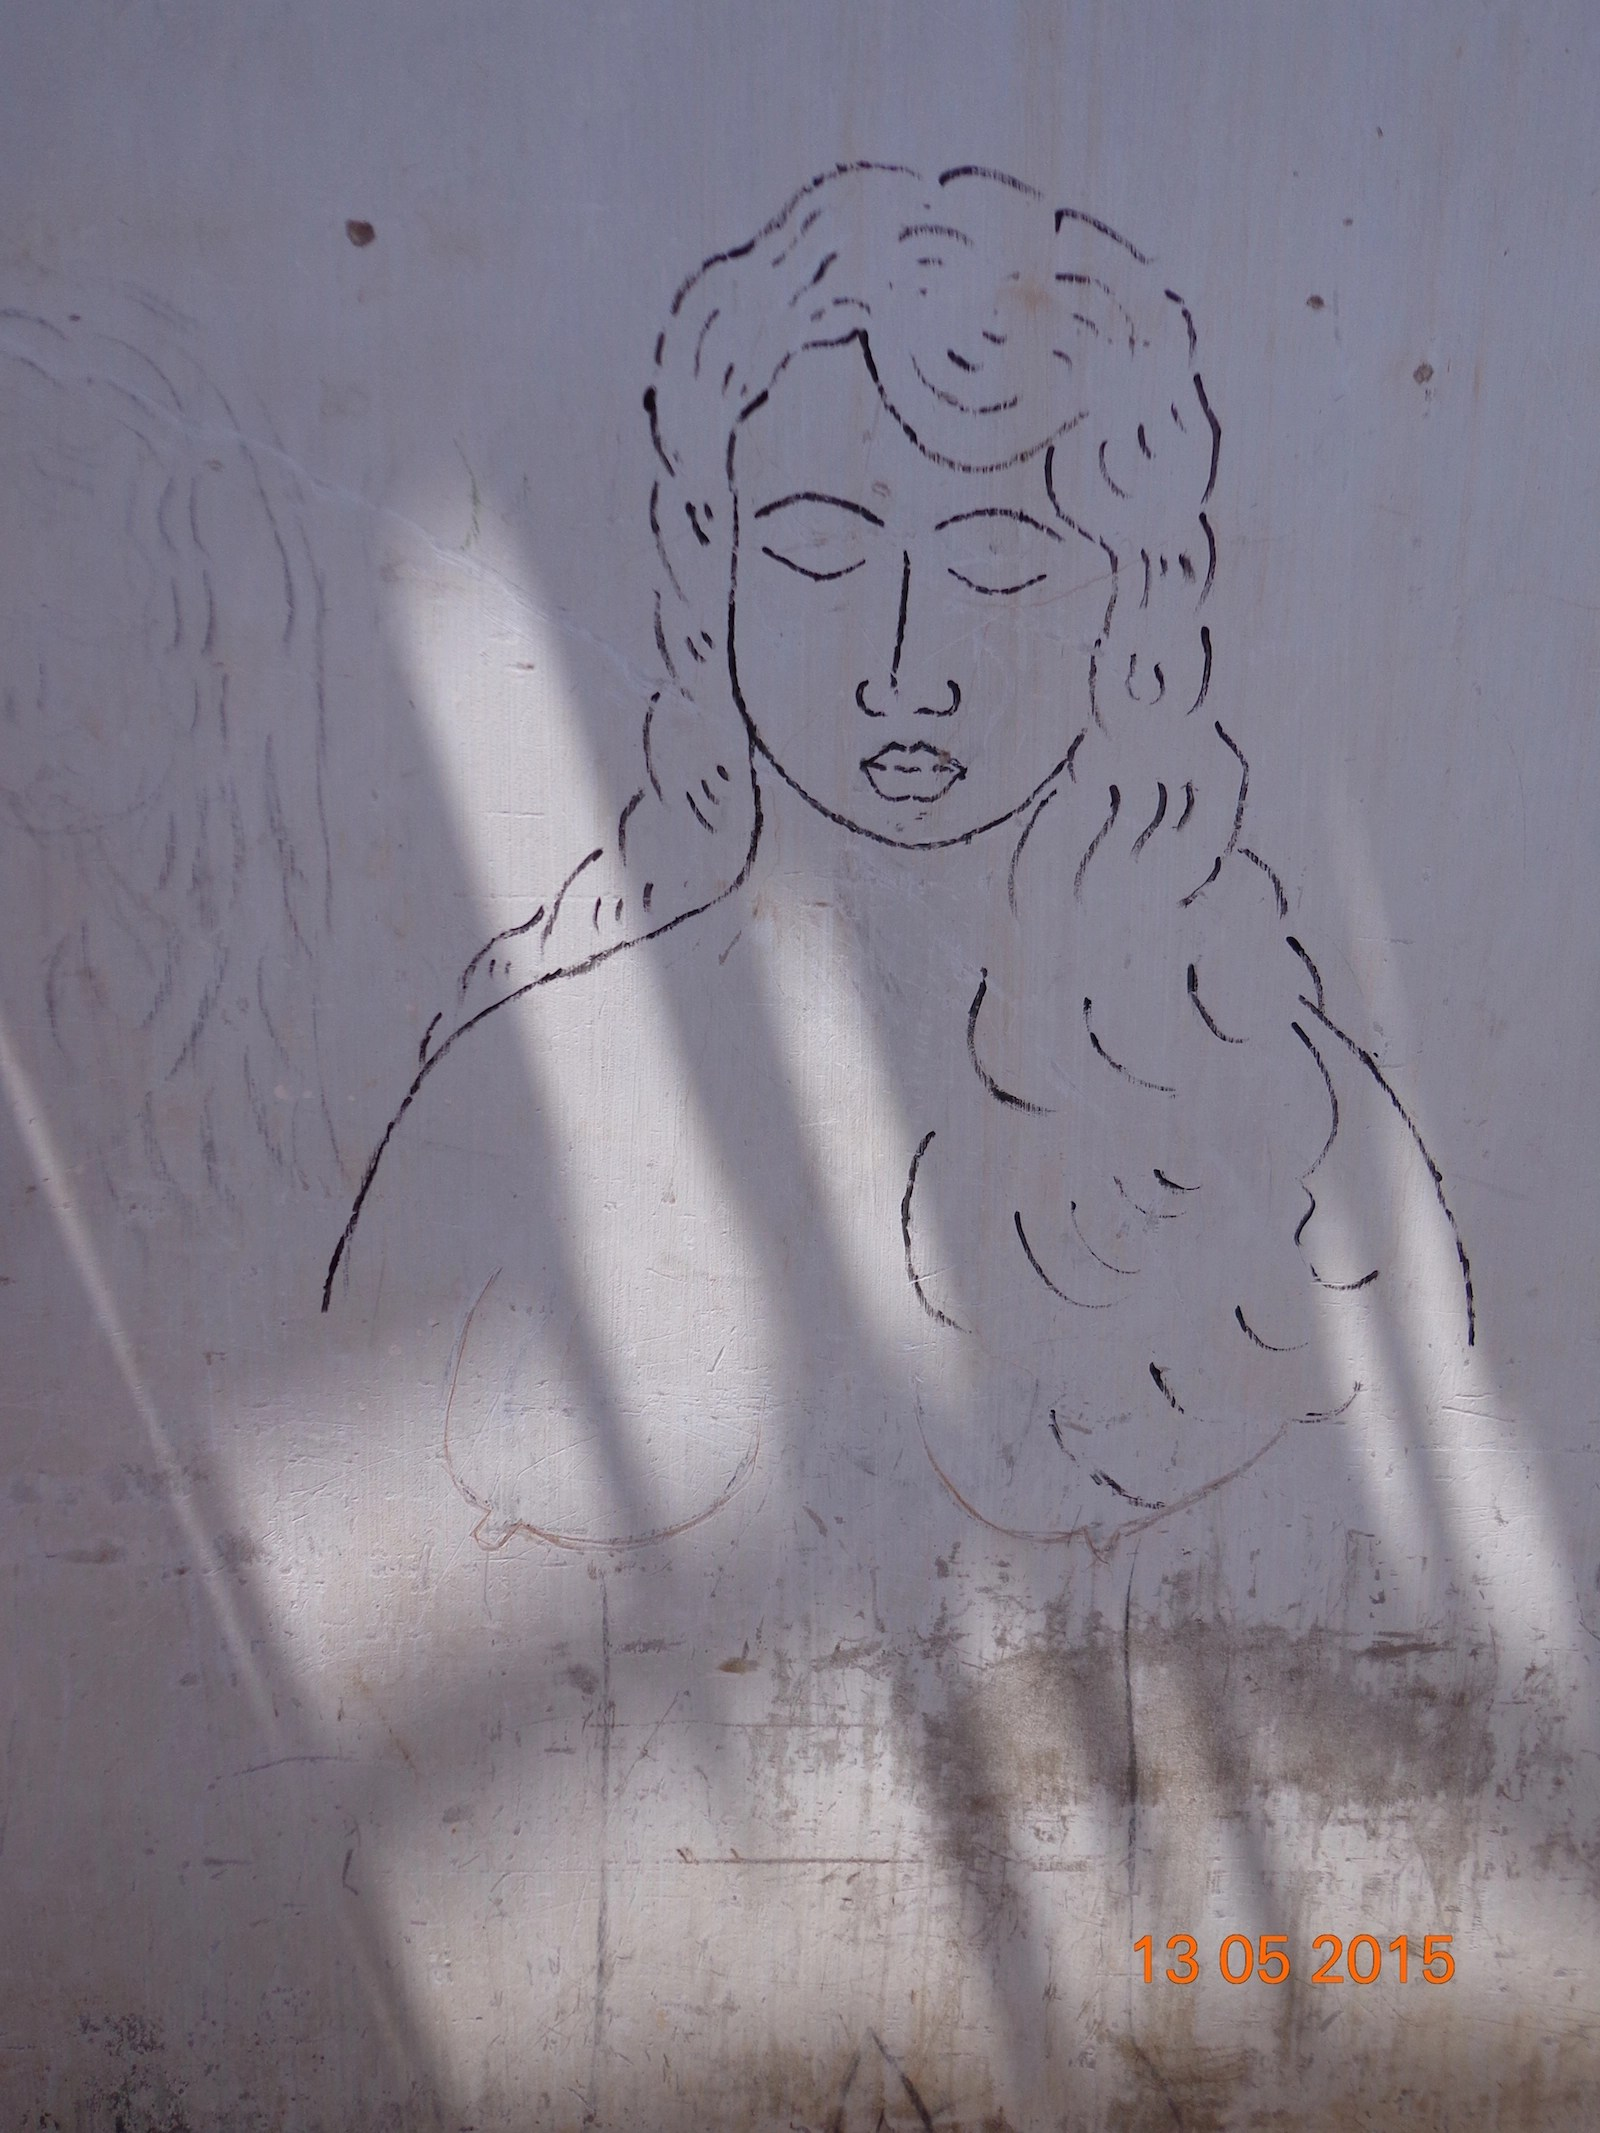 Drawings on walls of damaged houses-2